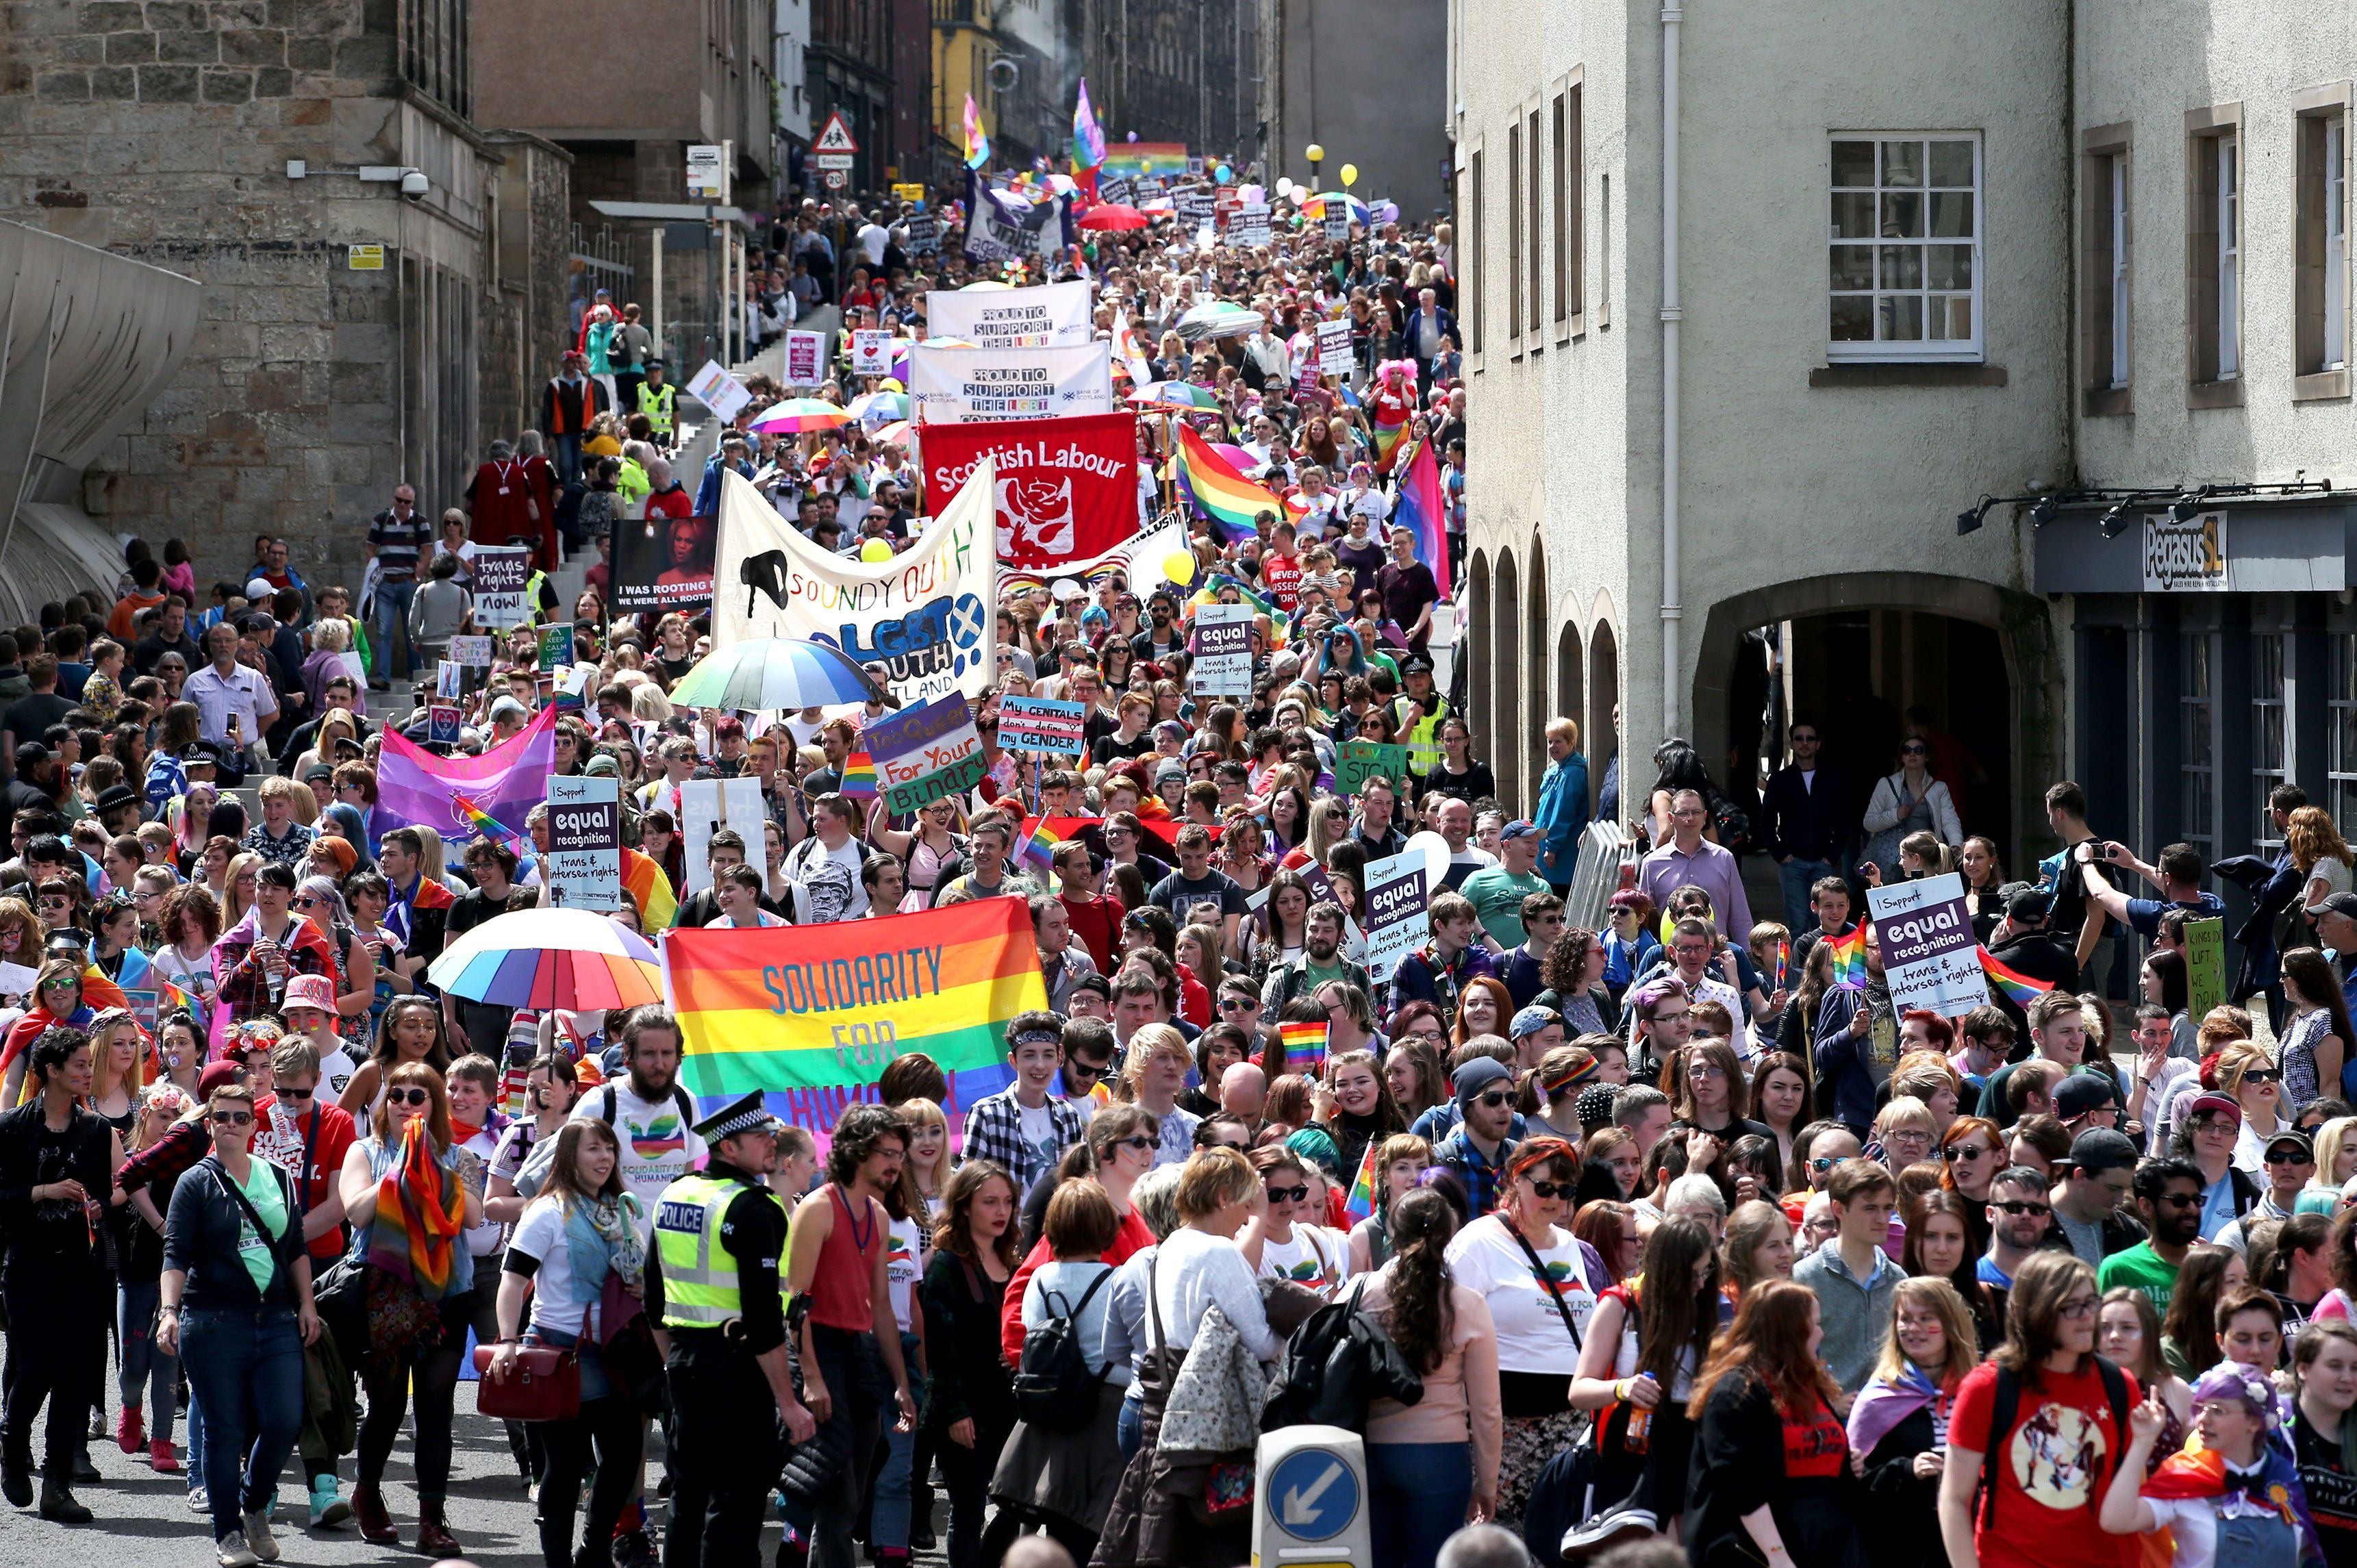 Outrage As Sheffield Pride Says Event Is A 'Celebration, Not Protest' And Bans Political